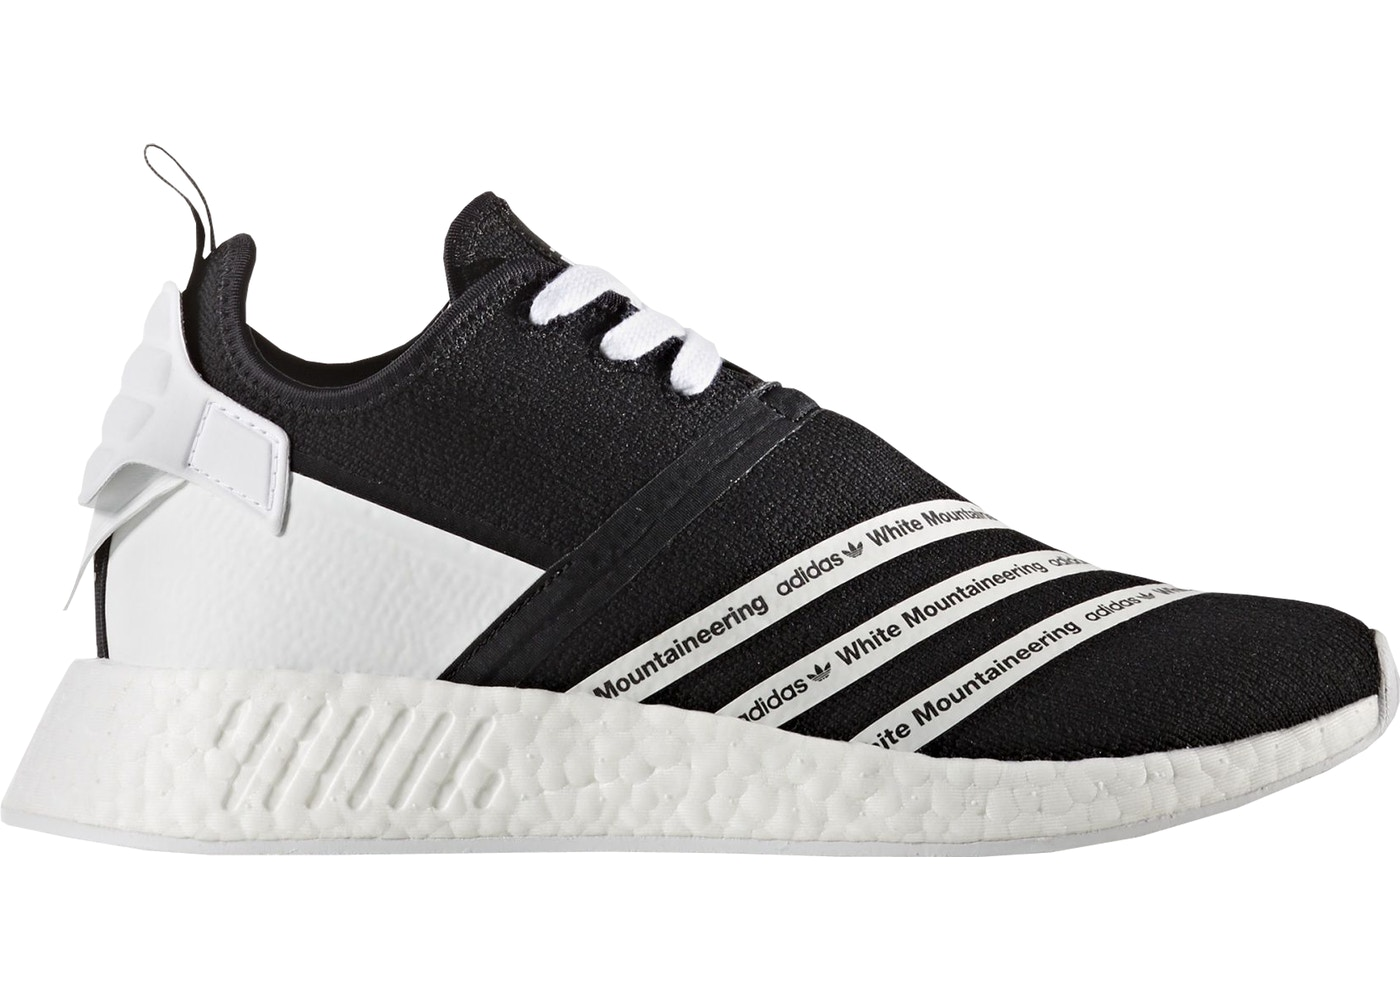 adidas NMD R2 Shoes - Release Date b2e8d49d0